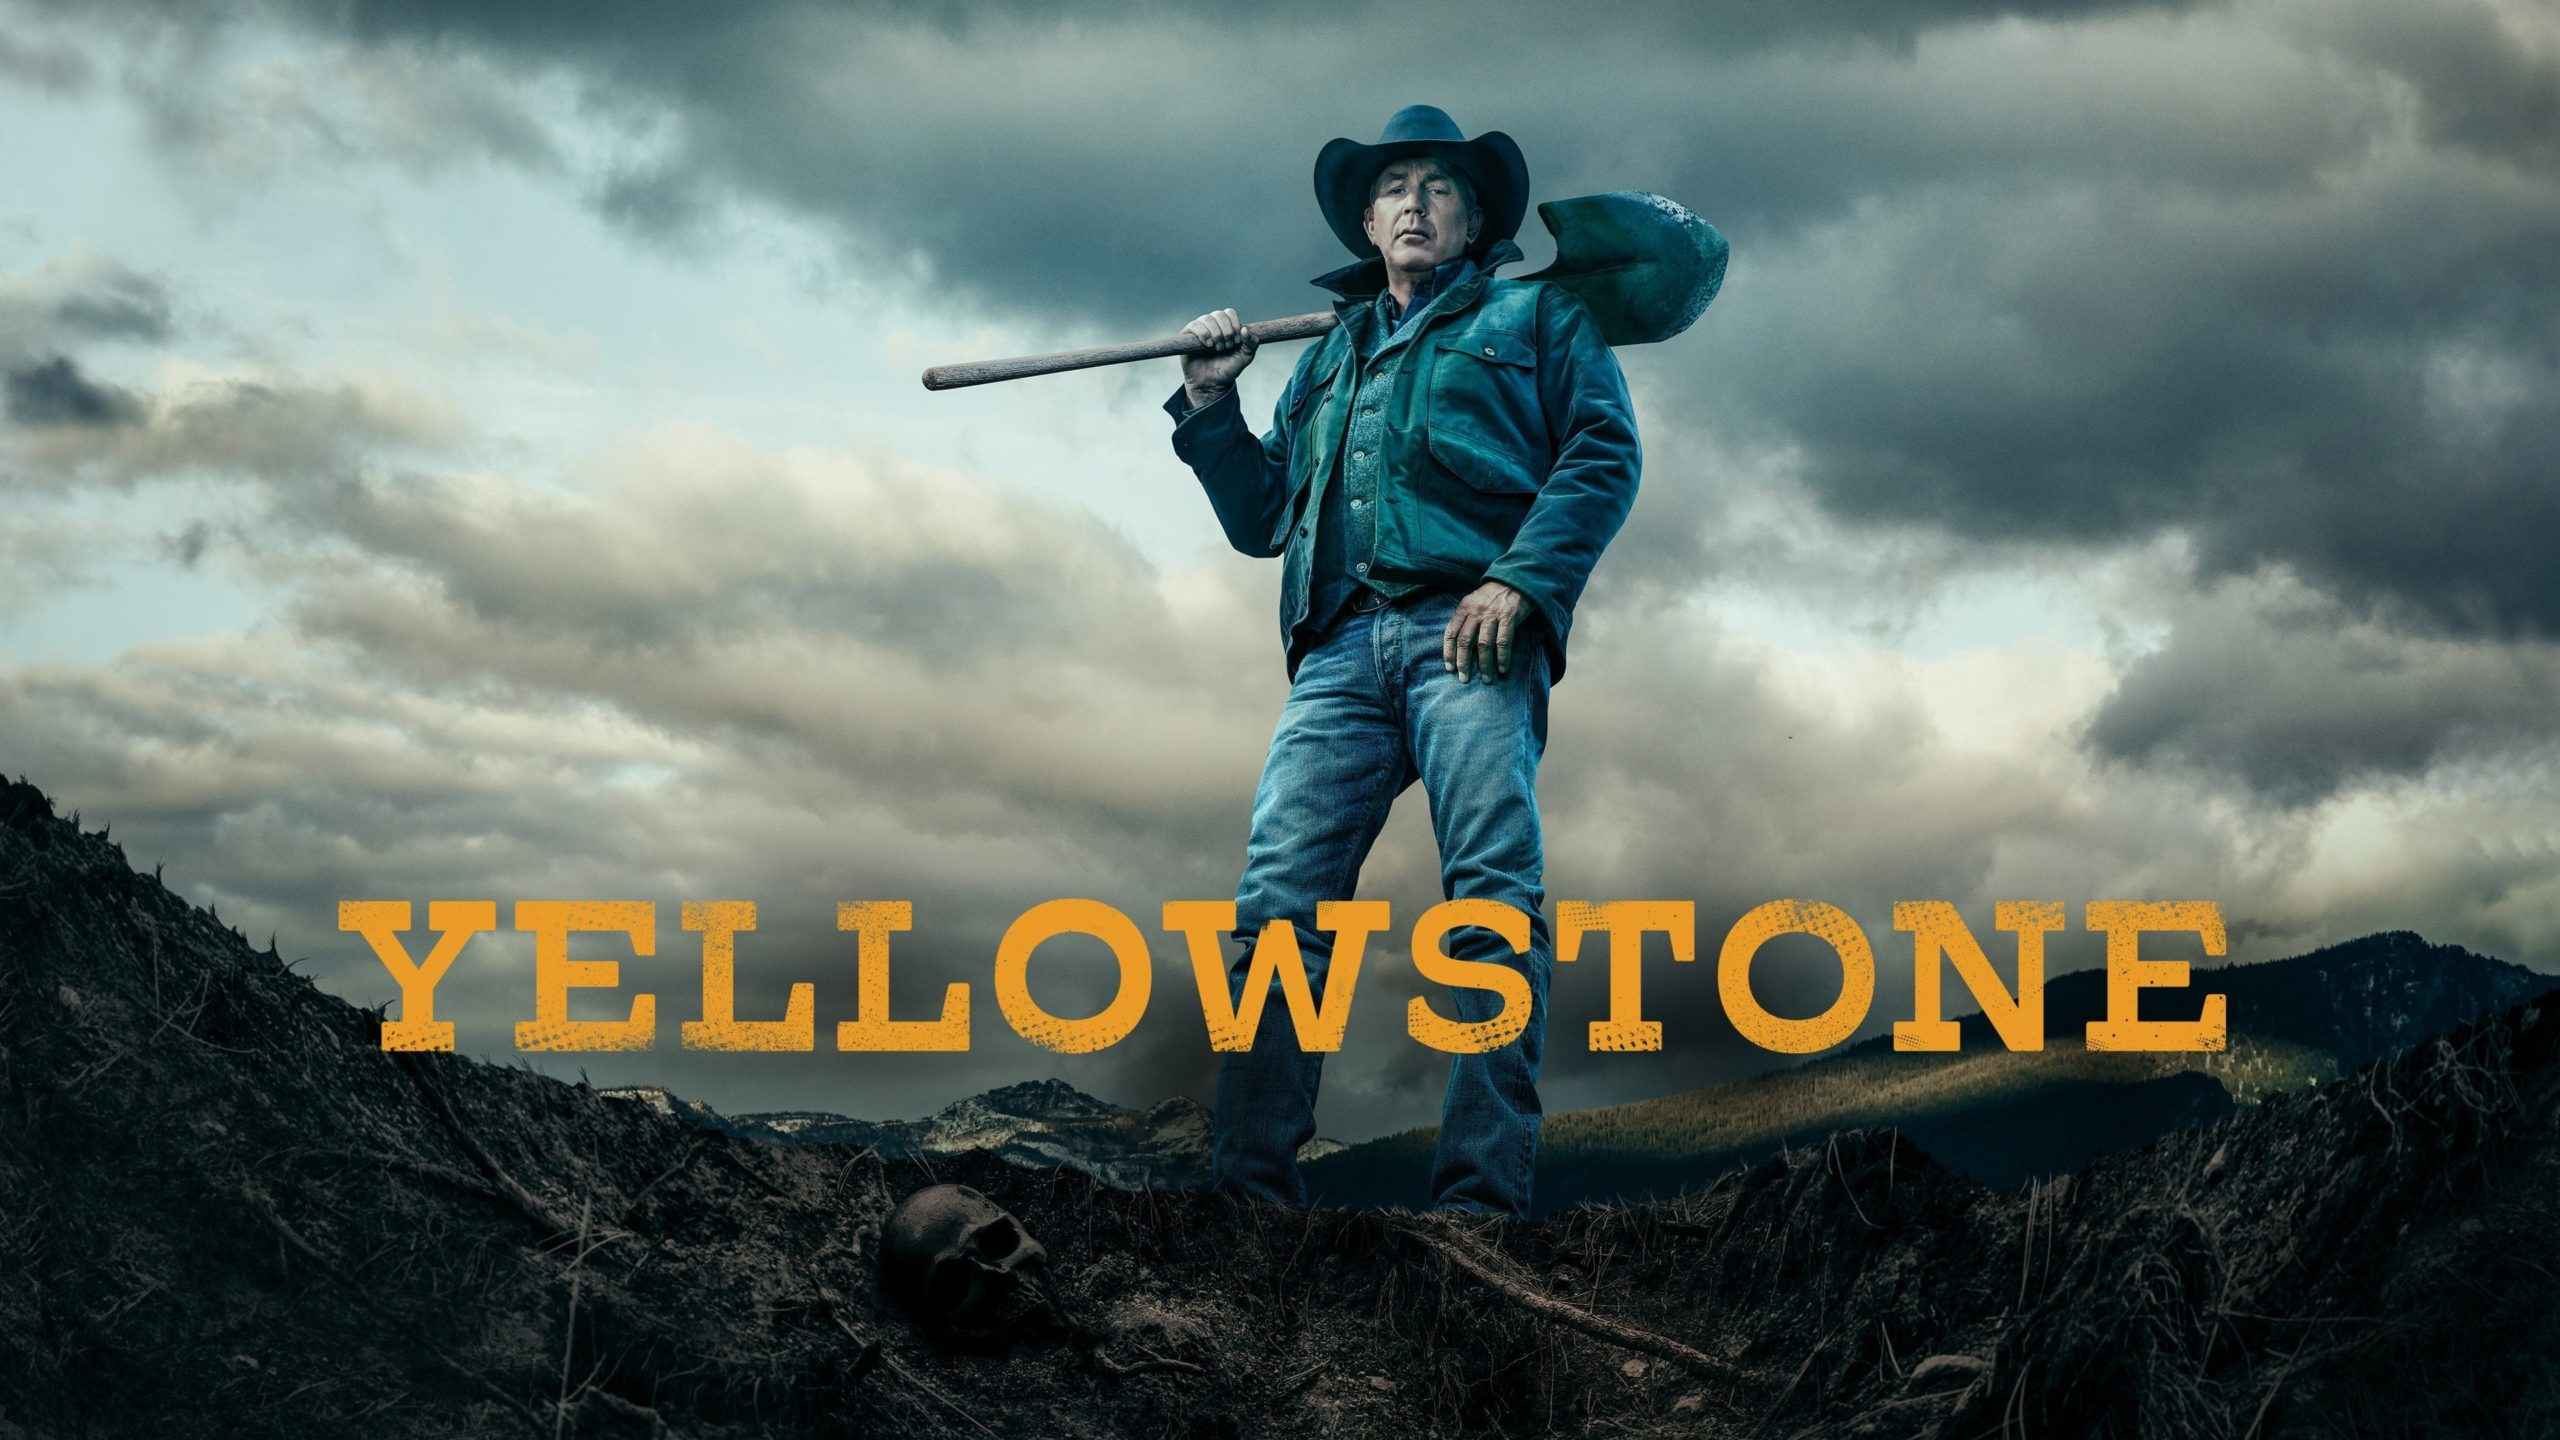 Yellowstone Season 3 Episode 9